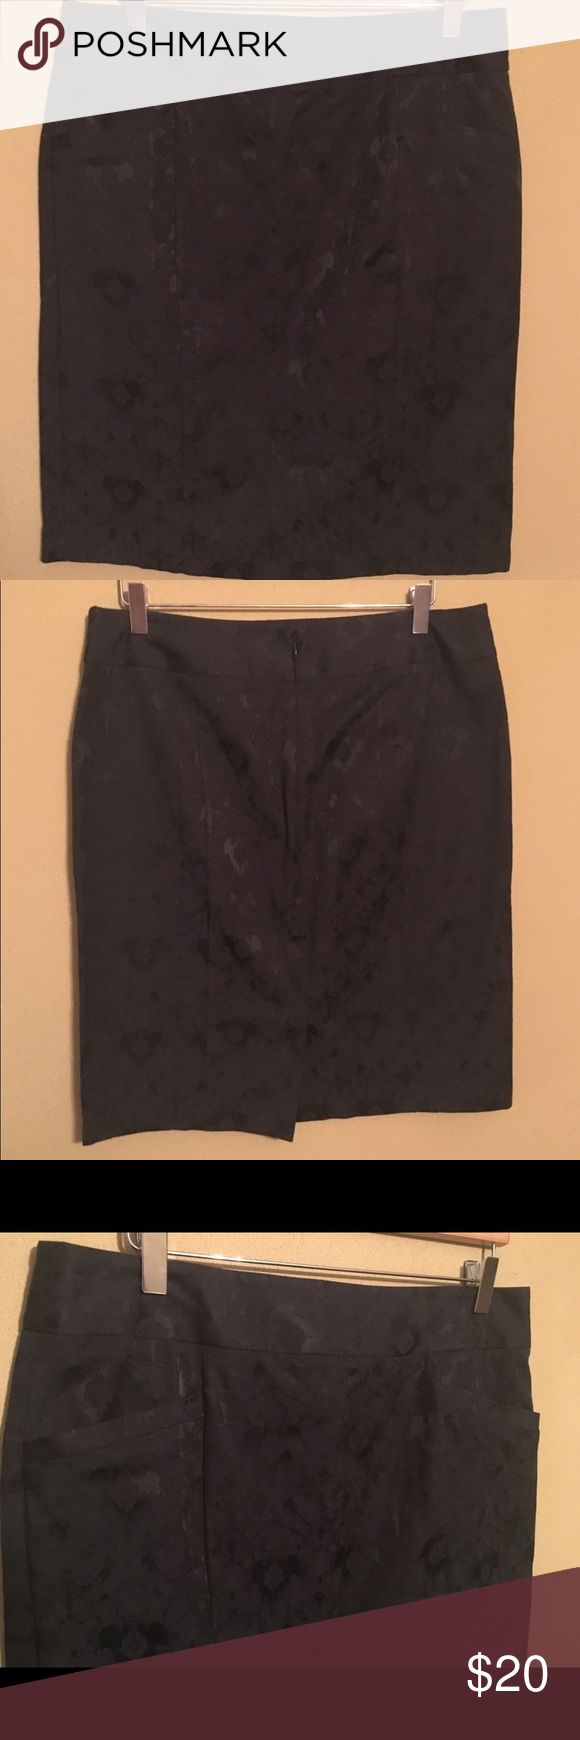 Oliva & Martin lace skirt This is a size 12 lace inlay skirt. The lace is attached to the cotton polyester fabric. Two front pockets, zipper and hook and eye closure in the back. Also a back slit.   Great condition! Oliva and Martin Skirts